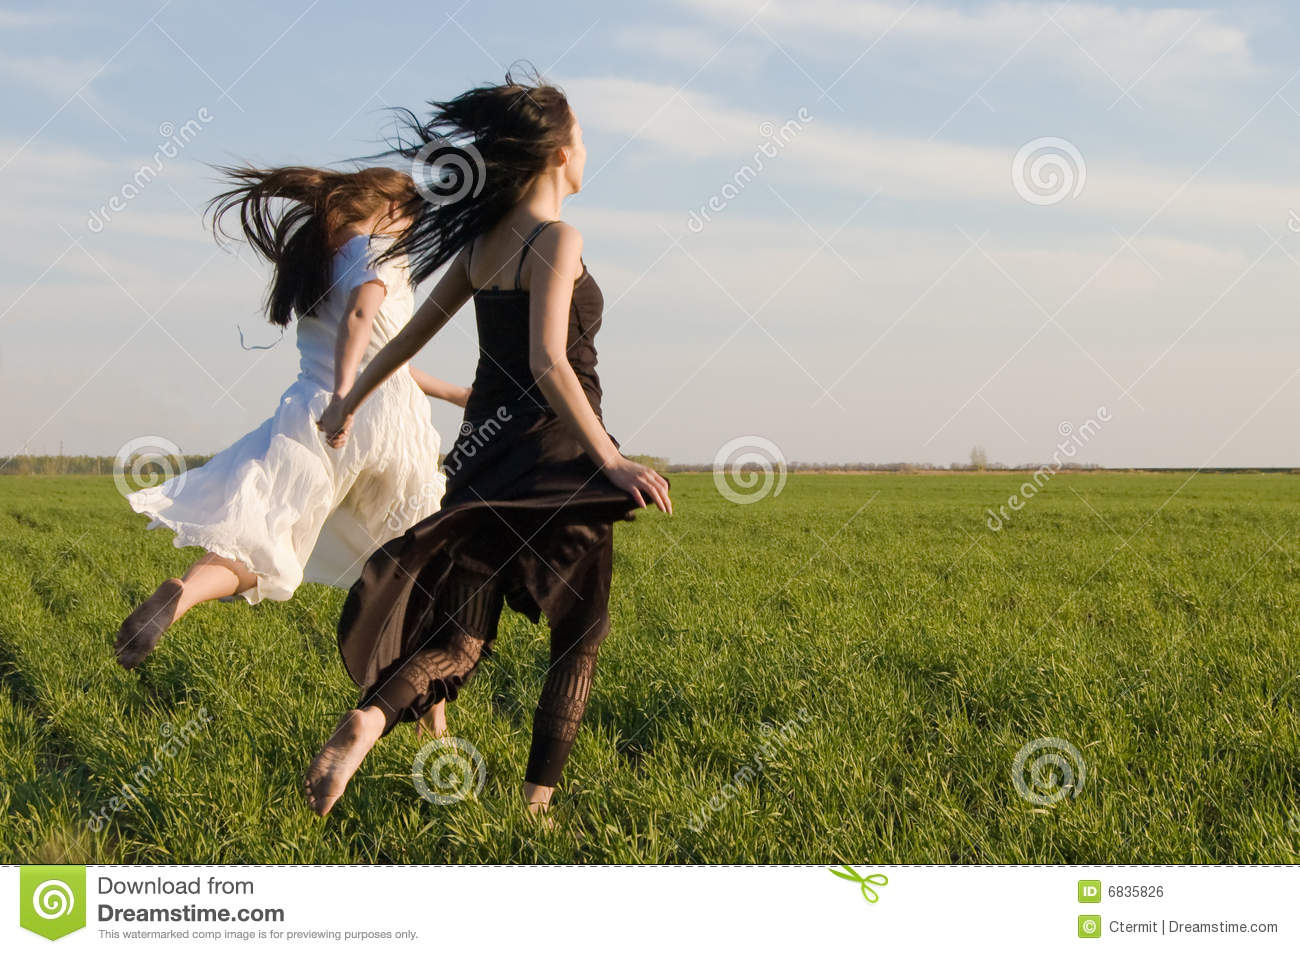 Two Girls Running On The Field 3 Royalty Free Stock Image ...